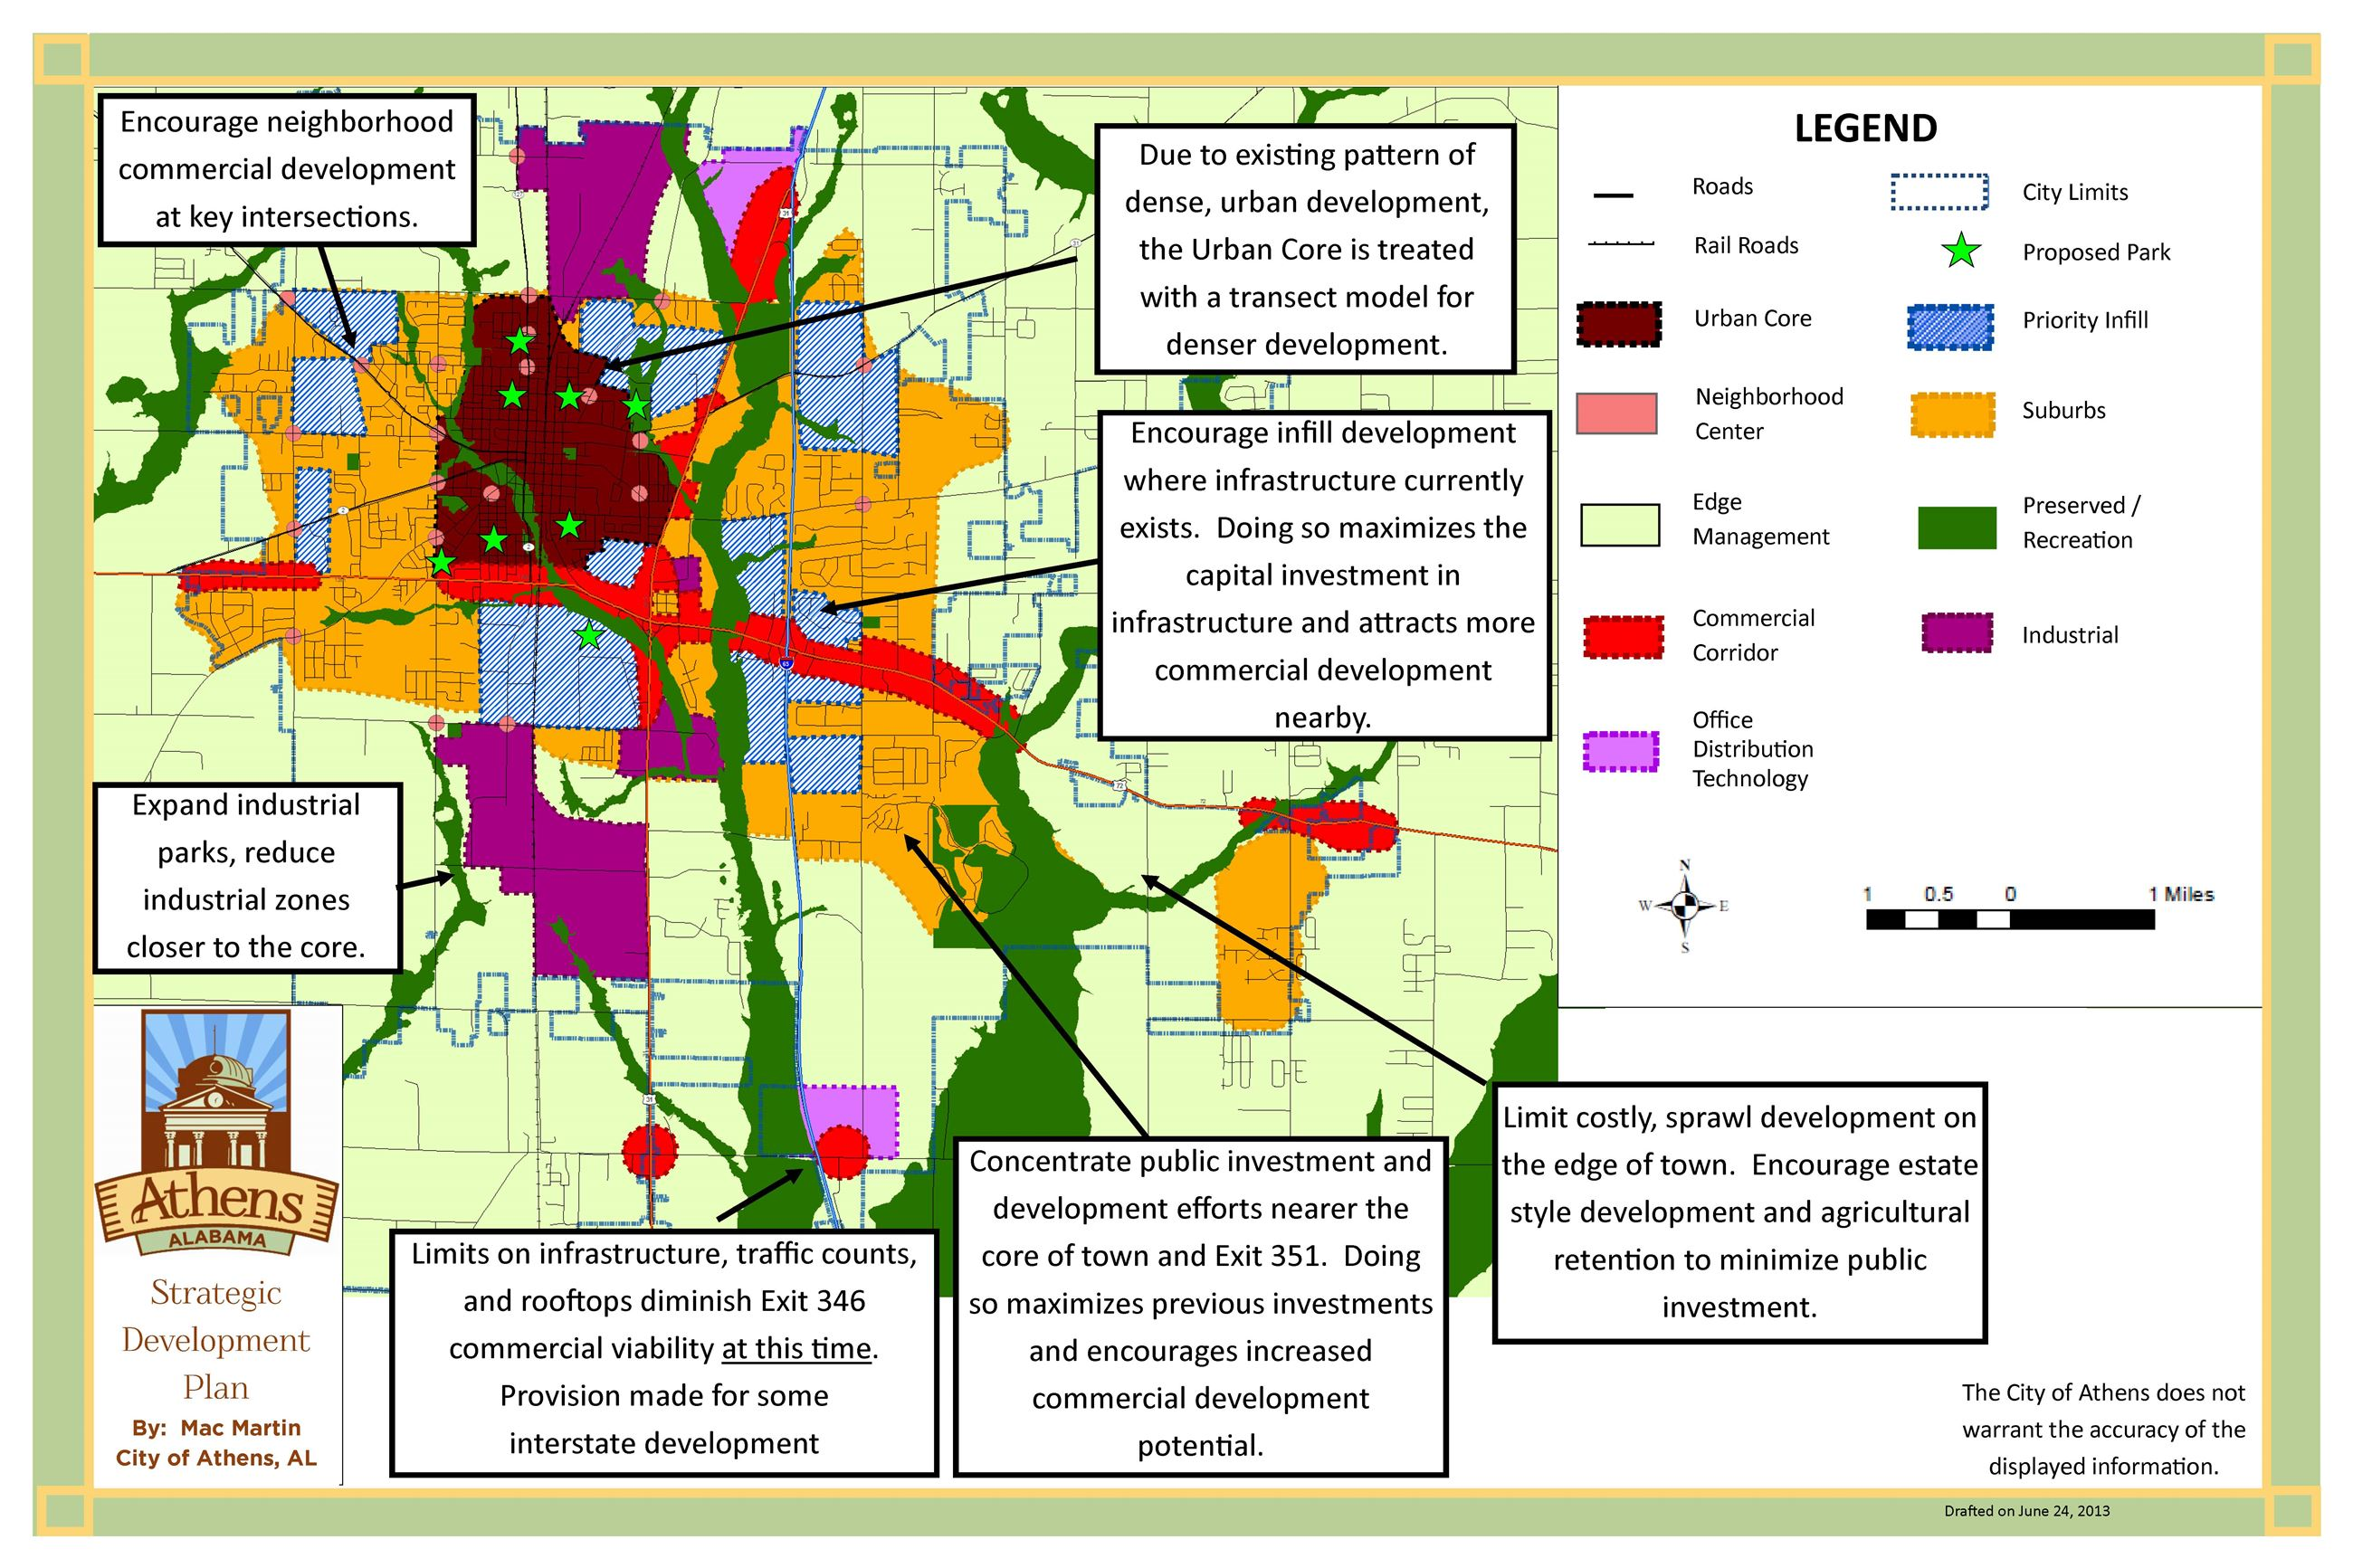 Strategic Development and Land Use Plan 2 map